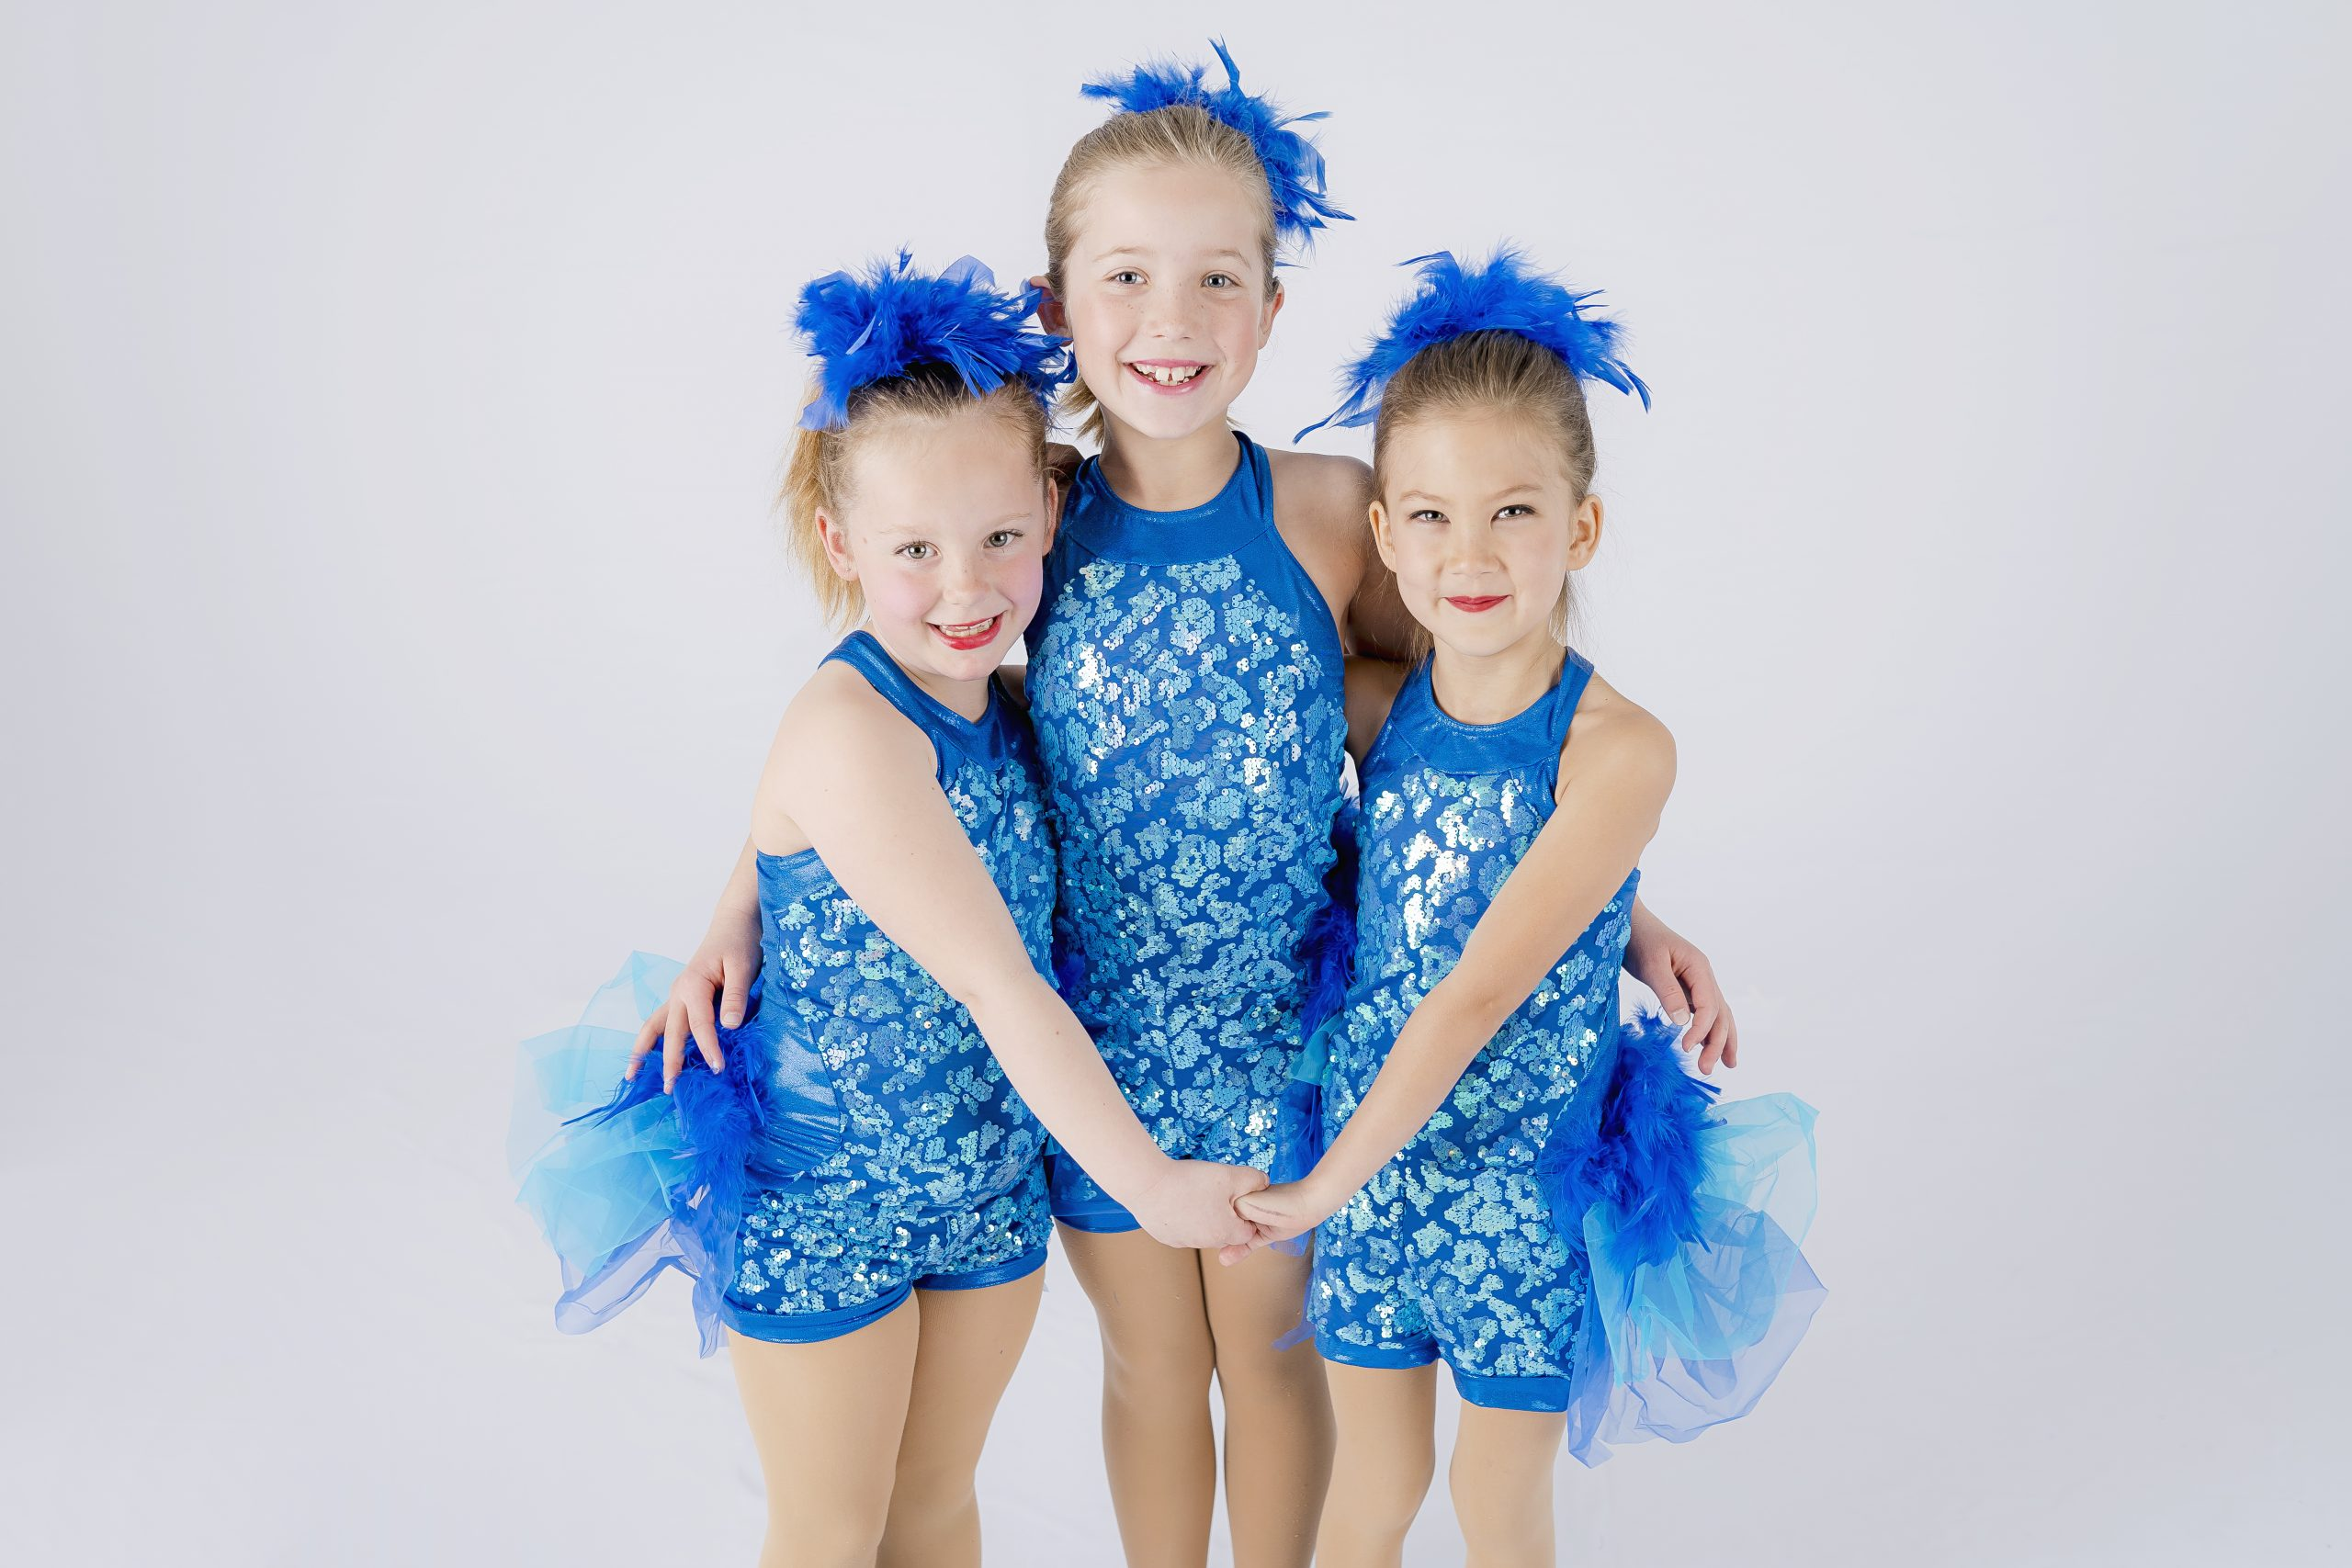 collingwood school of dance